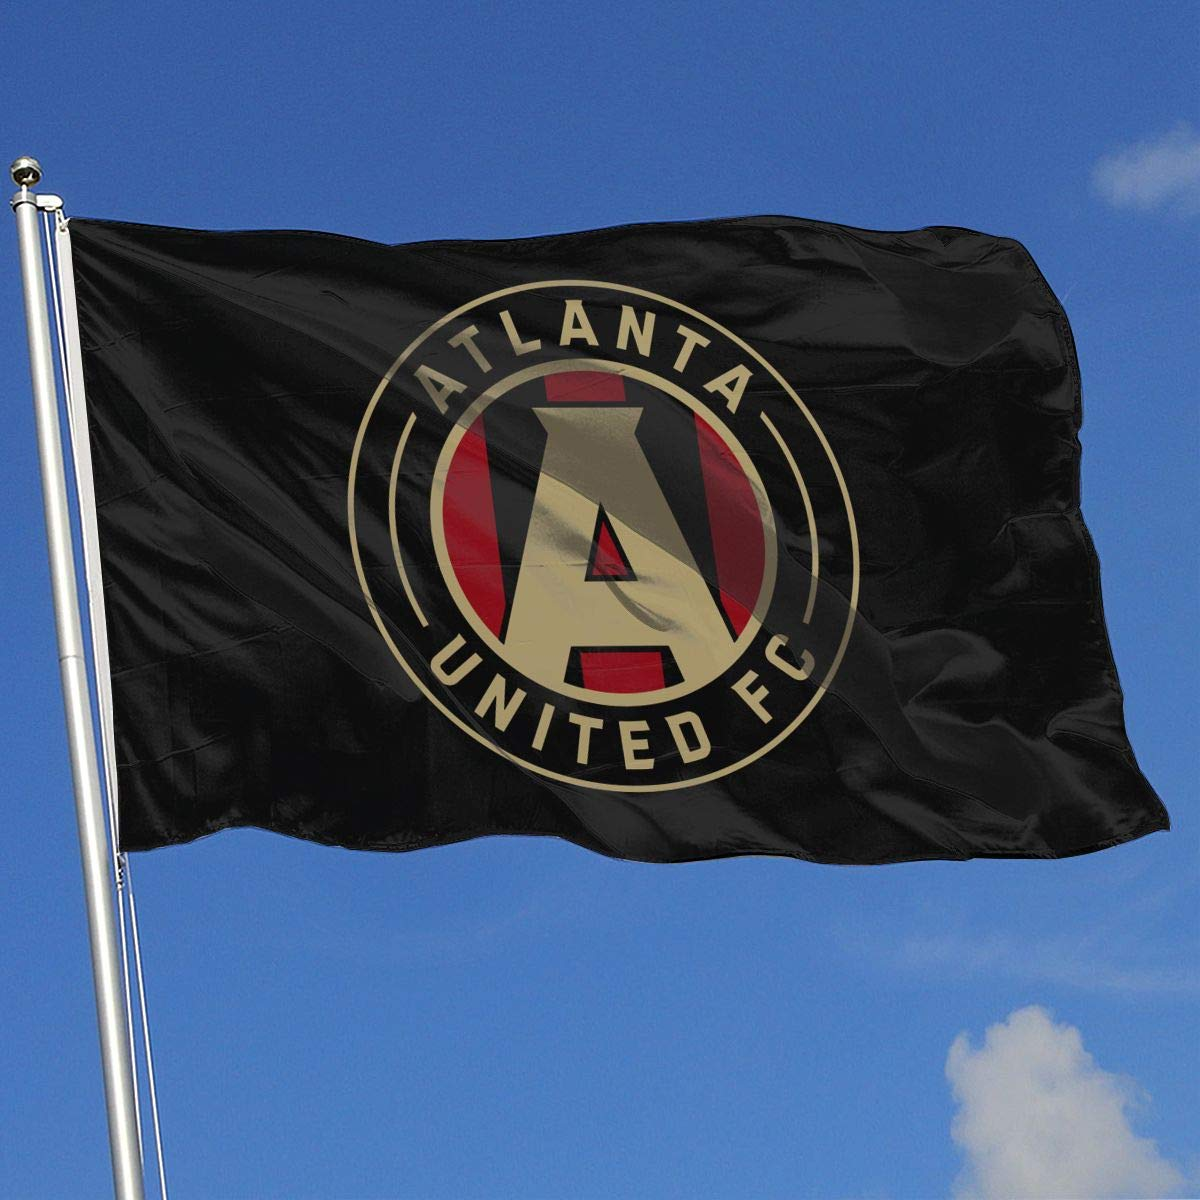 QZHUWAI Atlanta United Racer 3x5FT-100/% Polyester Single Layer Translucent Banner Brass Grommets Outdoor Special